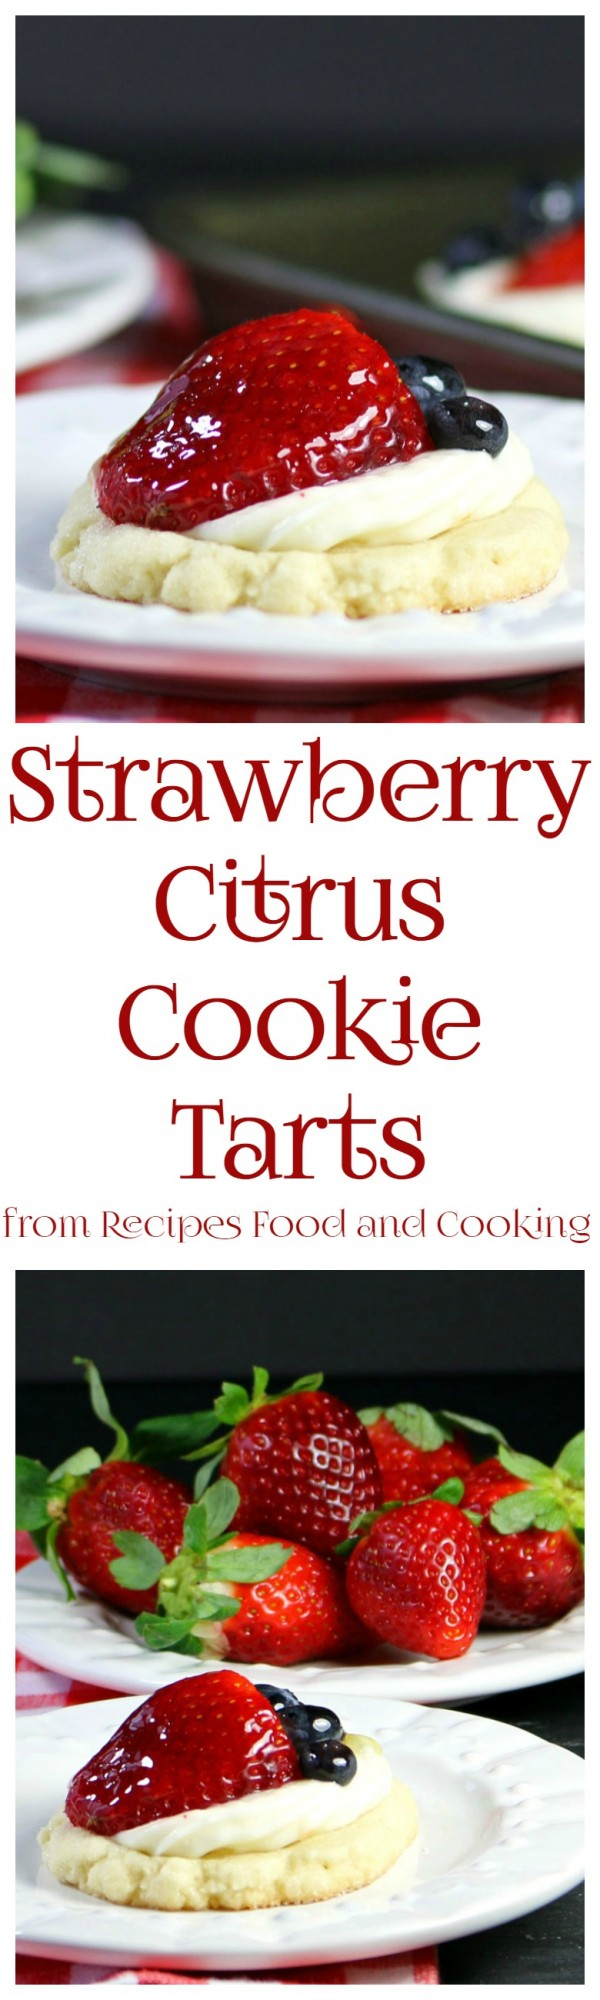 Strawberry Citrus Cookie Tarts